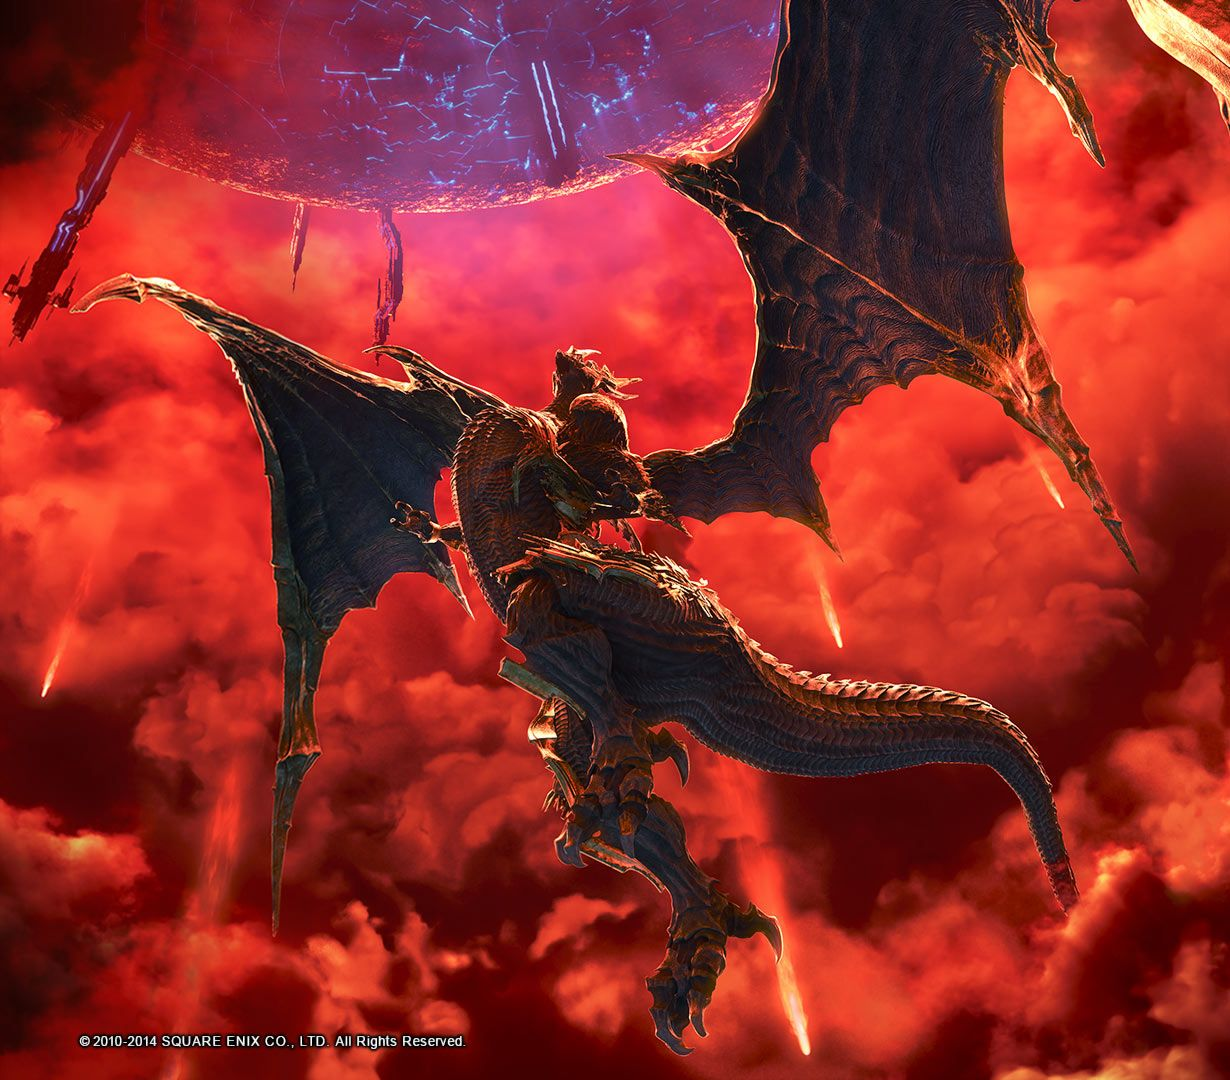 Bahamut & Meteor from Final Fantasy XIV: A Realm Reborn